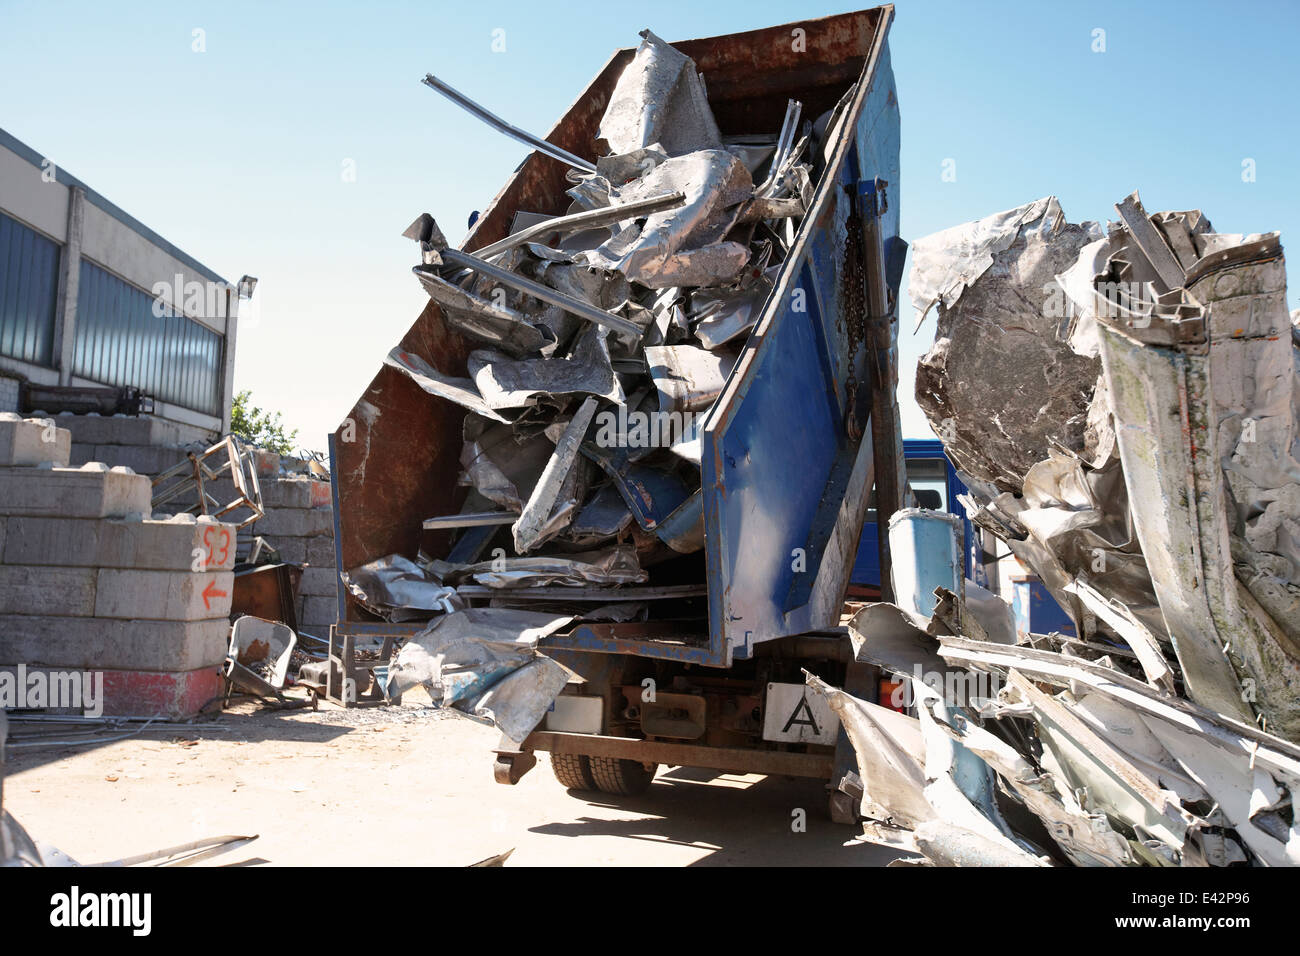 Dump truck emptying aluminium from skip into scrap yard - Stock Image